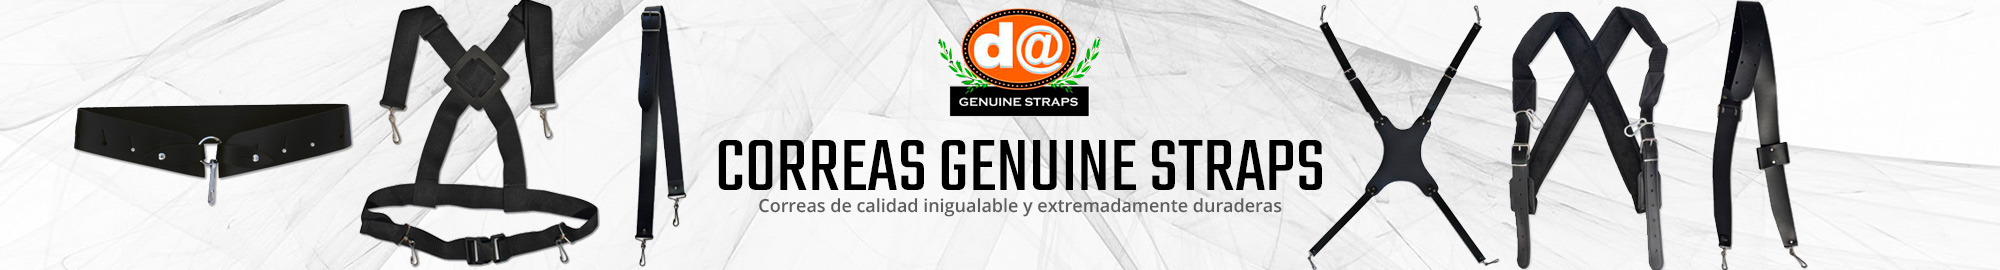 Correas Genuine Straps